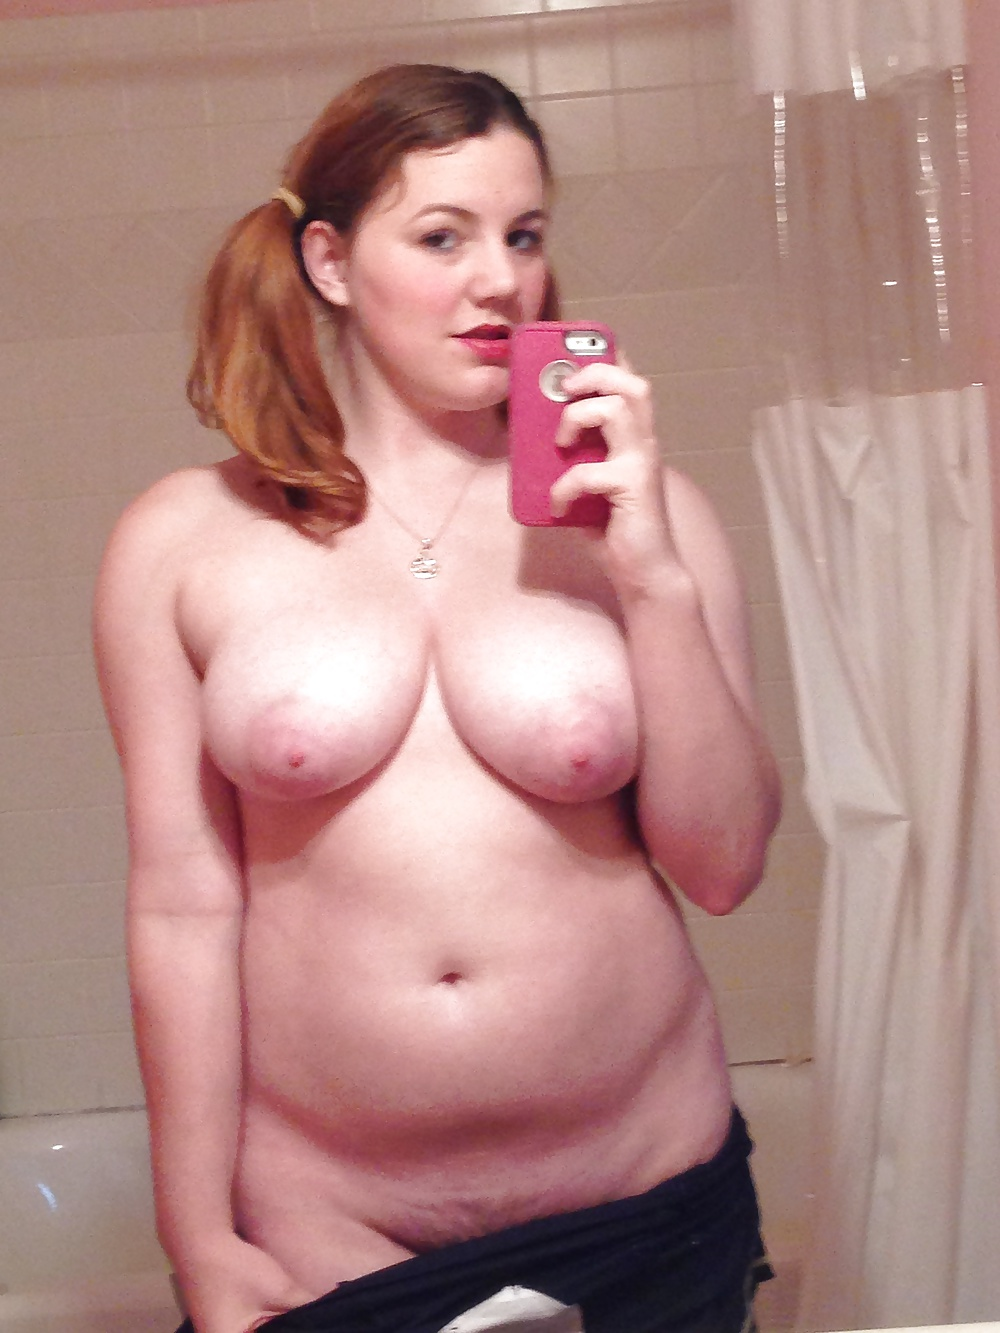 Naked ginger girls with freckles